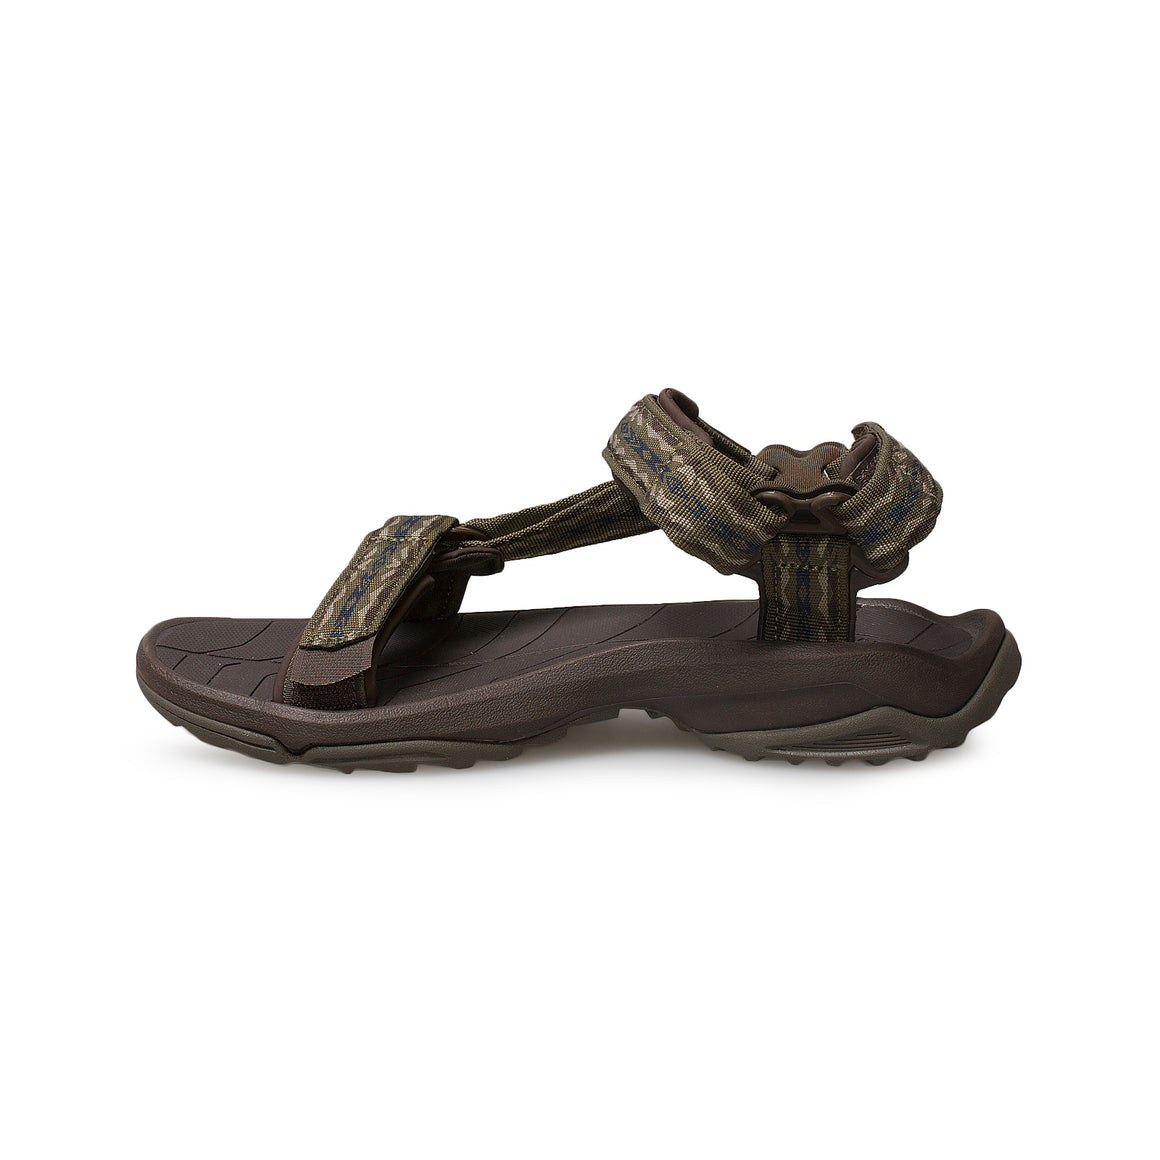 Teva Fi Lite Rambler Dark Olive Sandals - Men's